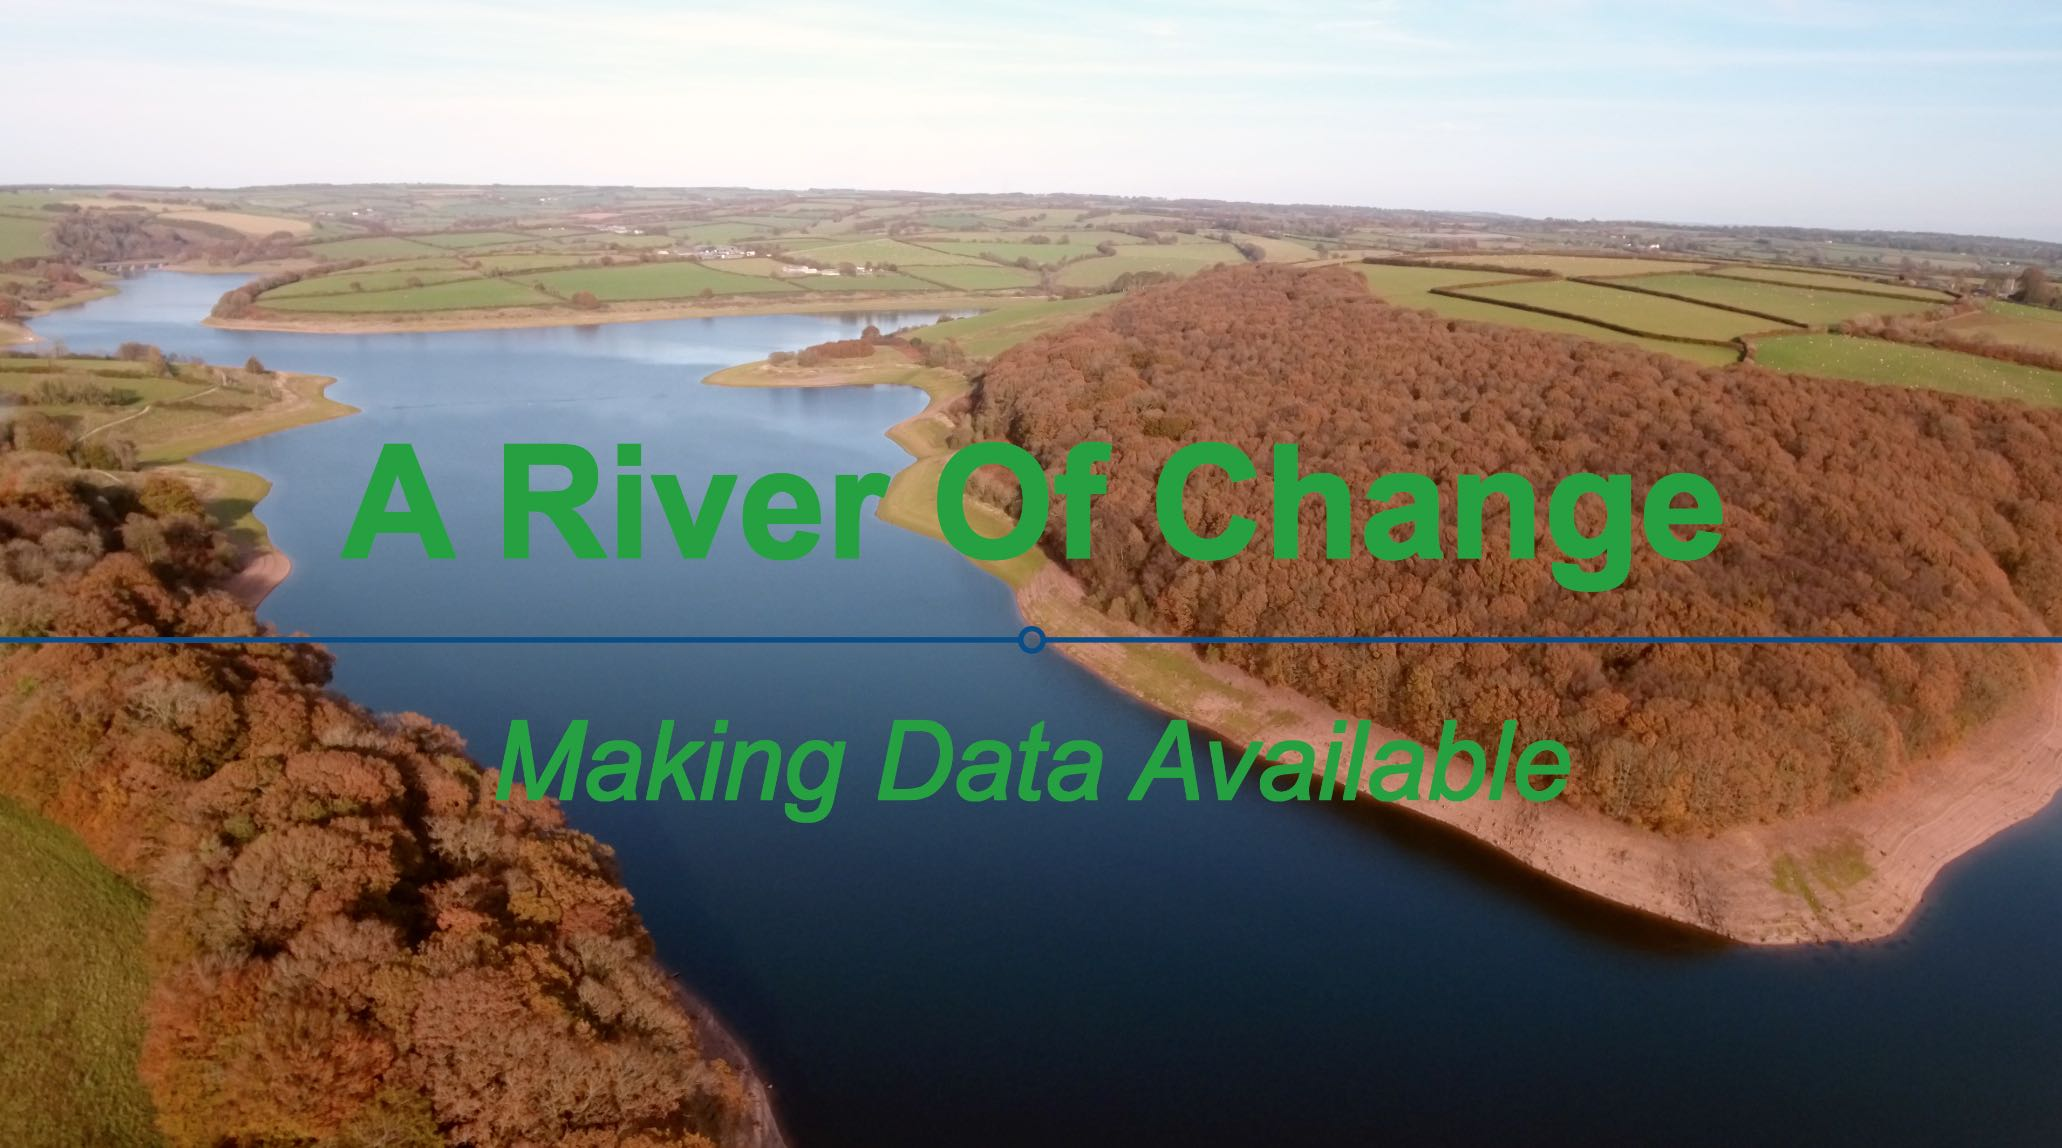 ENVIRONMENT AGENCY     A RIVER OF CHANGE